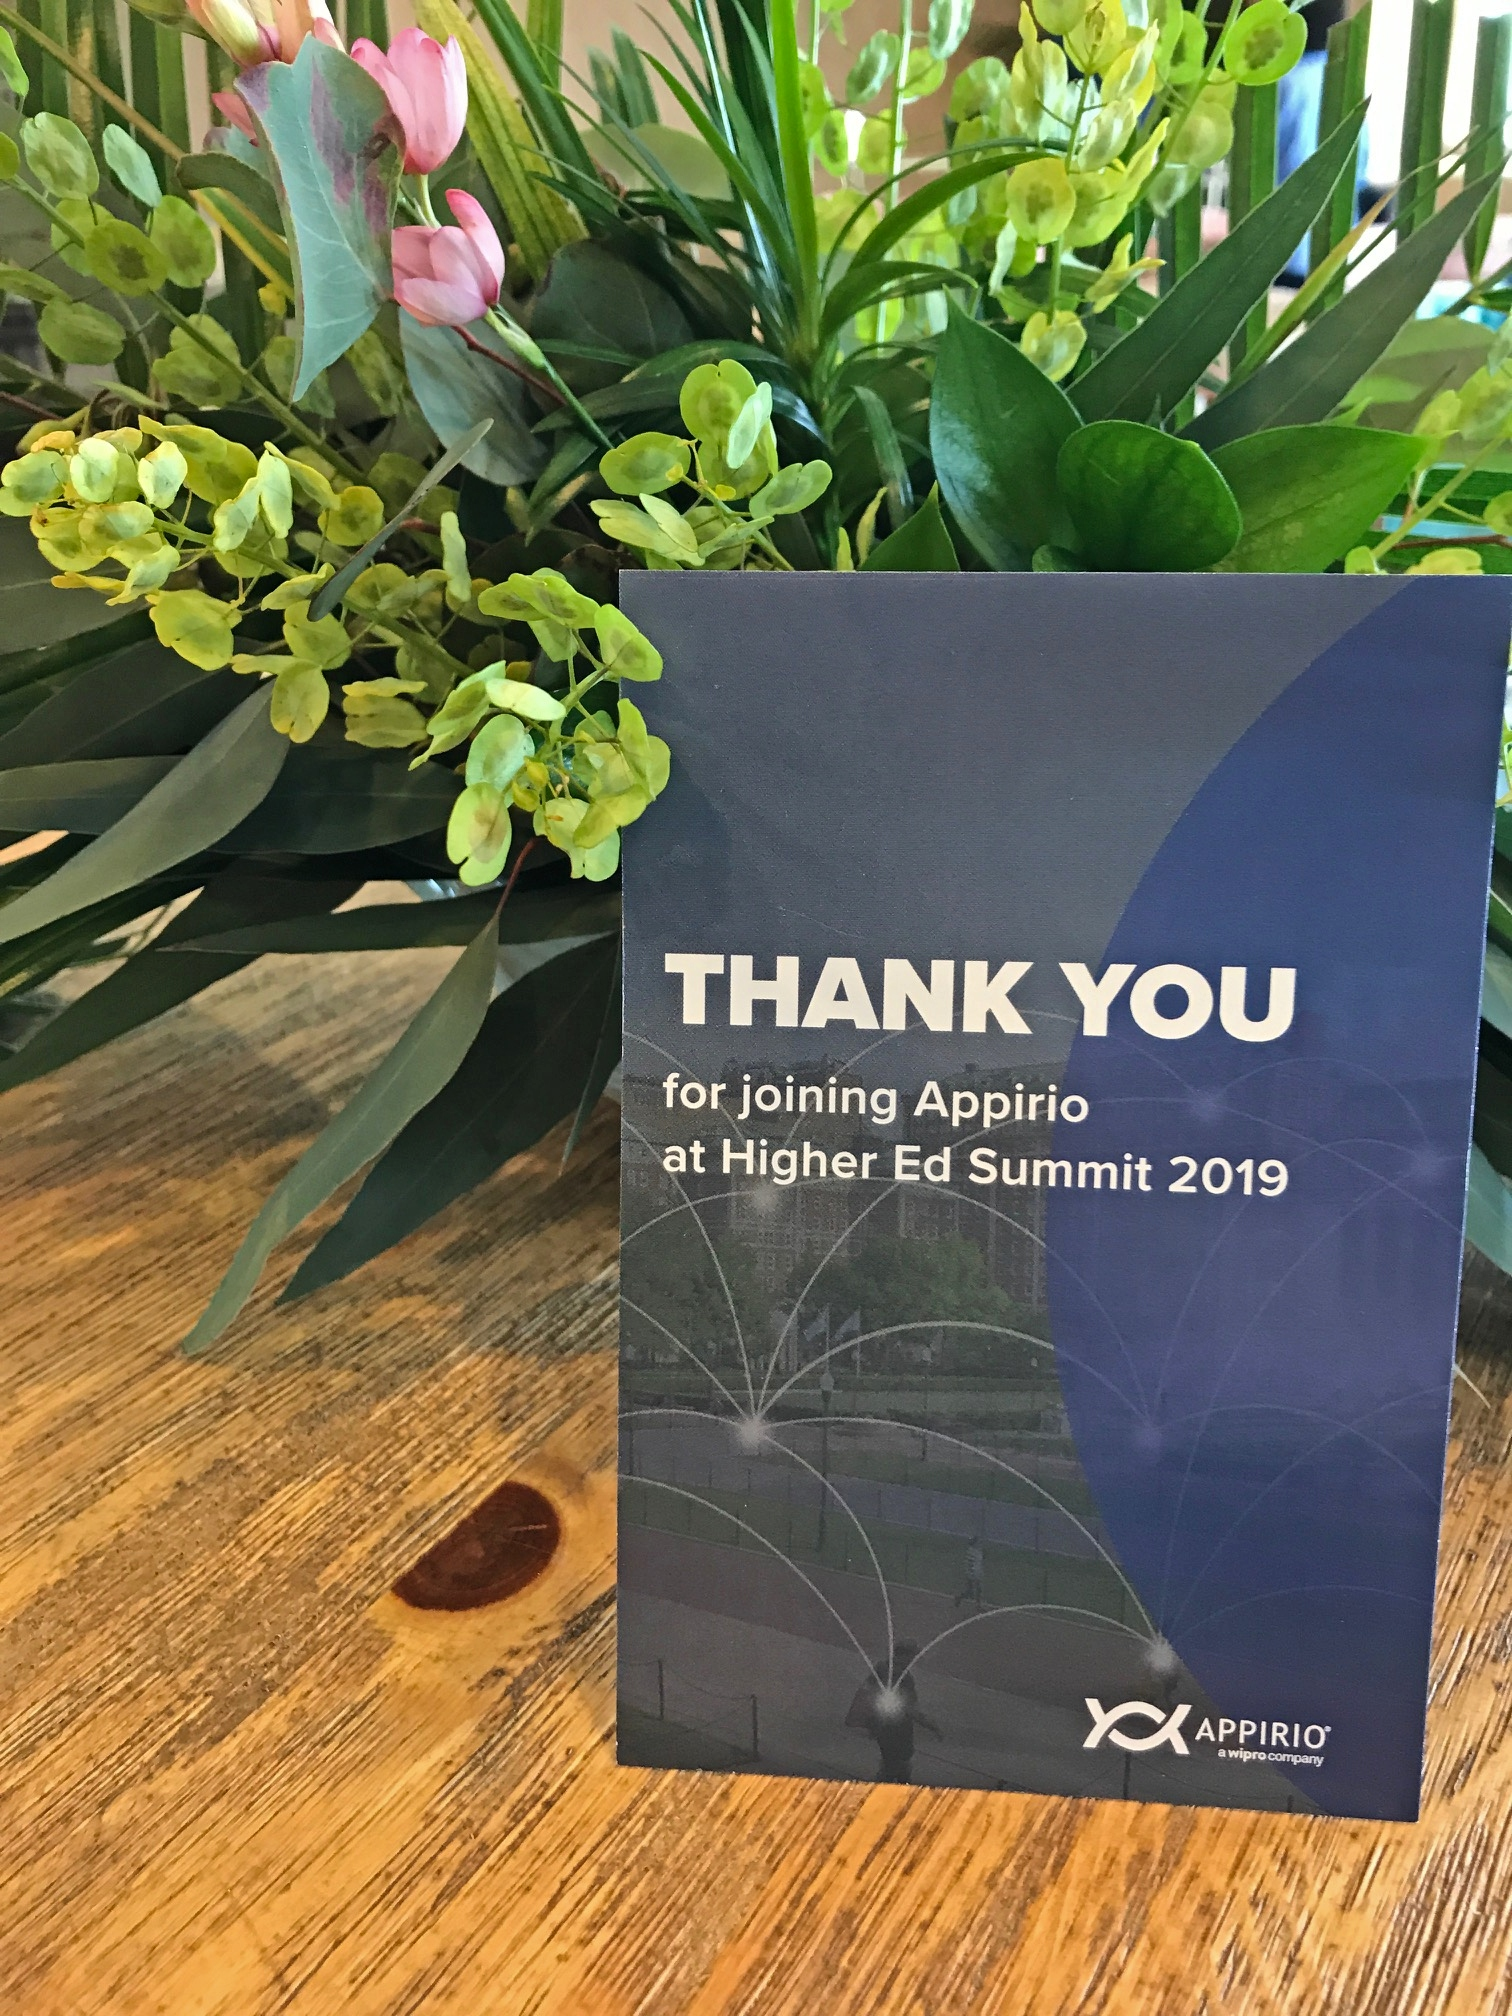 Appirio Thank You Card for Attendees at the Higher Ed Summit 2019 in San Diego